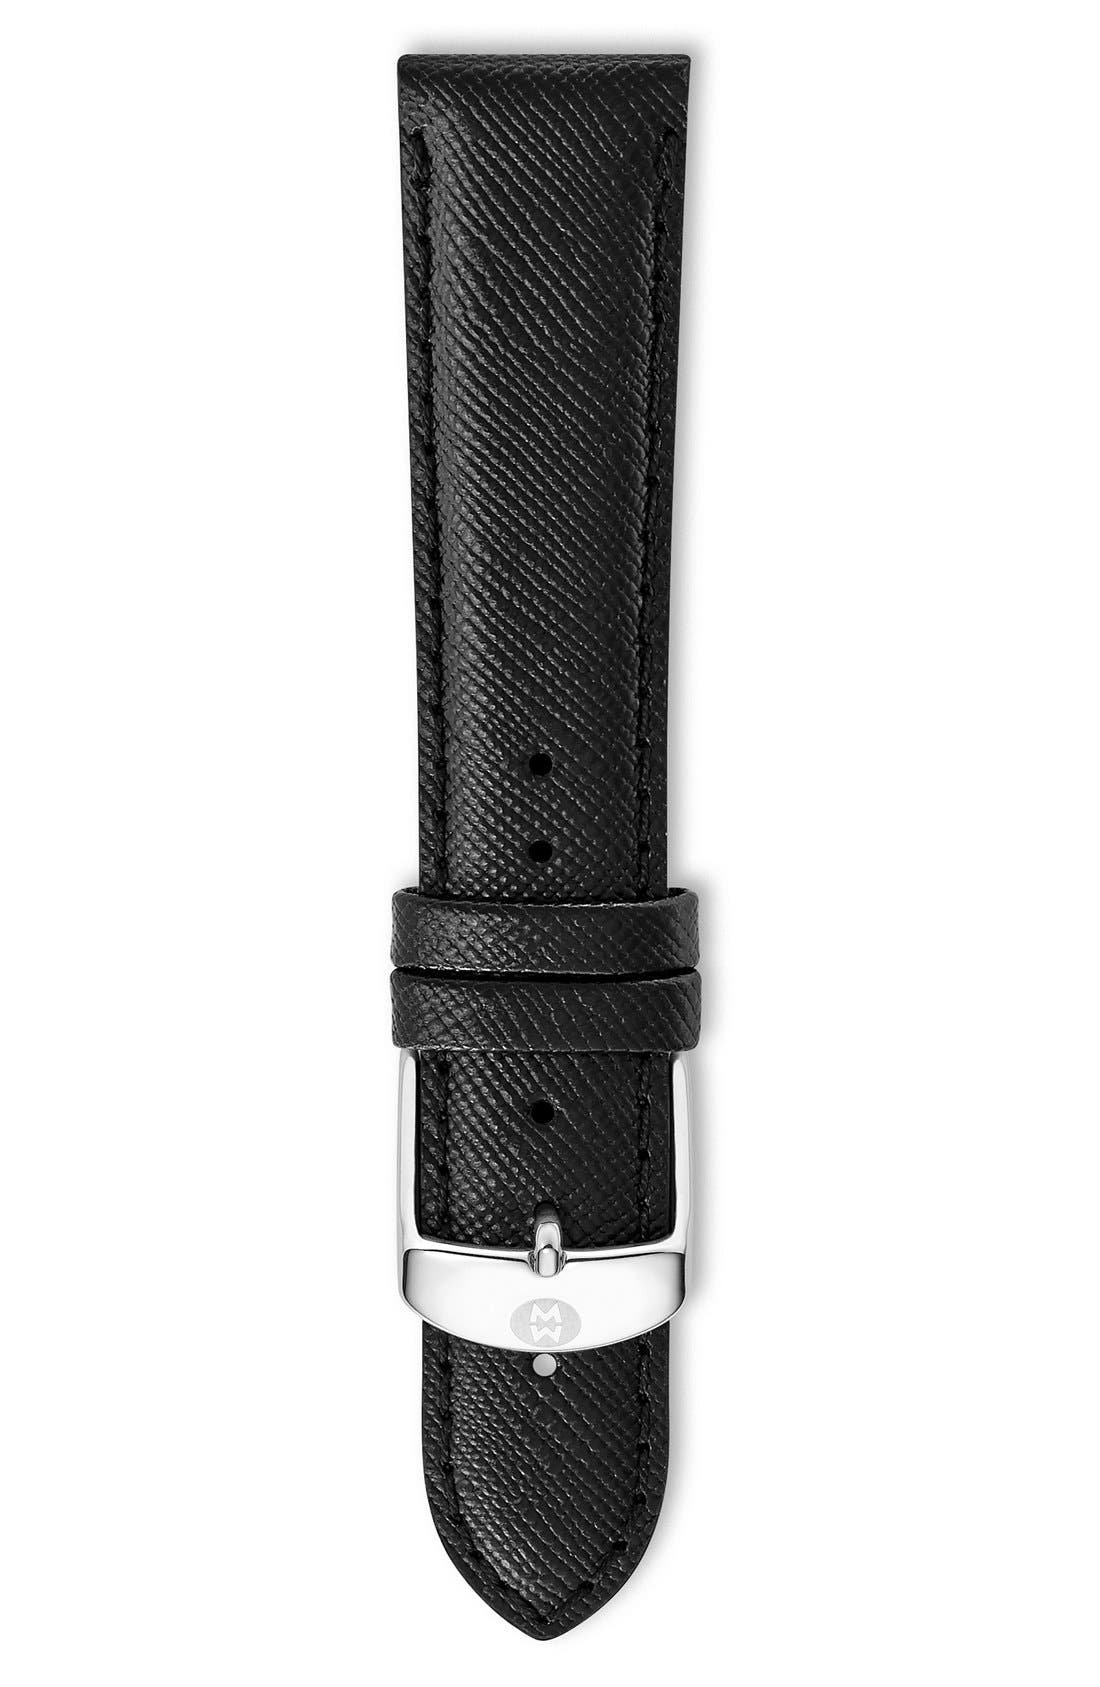 MICHELE 20mm Saffiano Leather Watch Strap